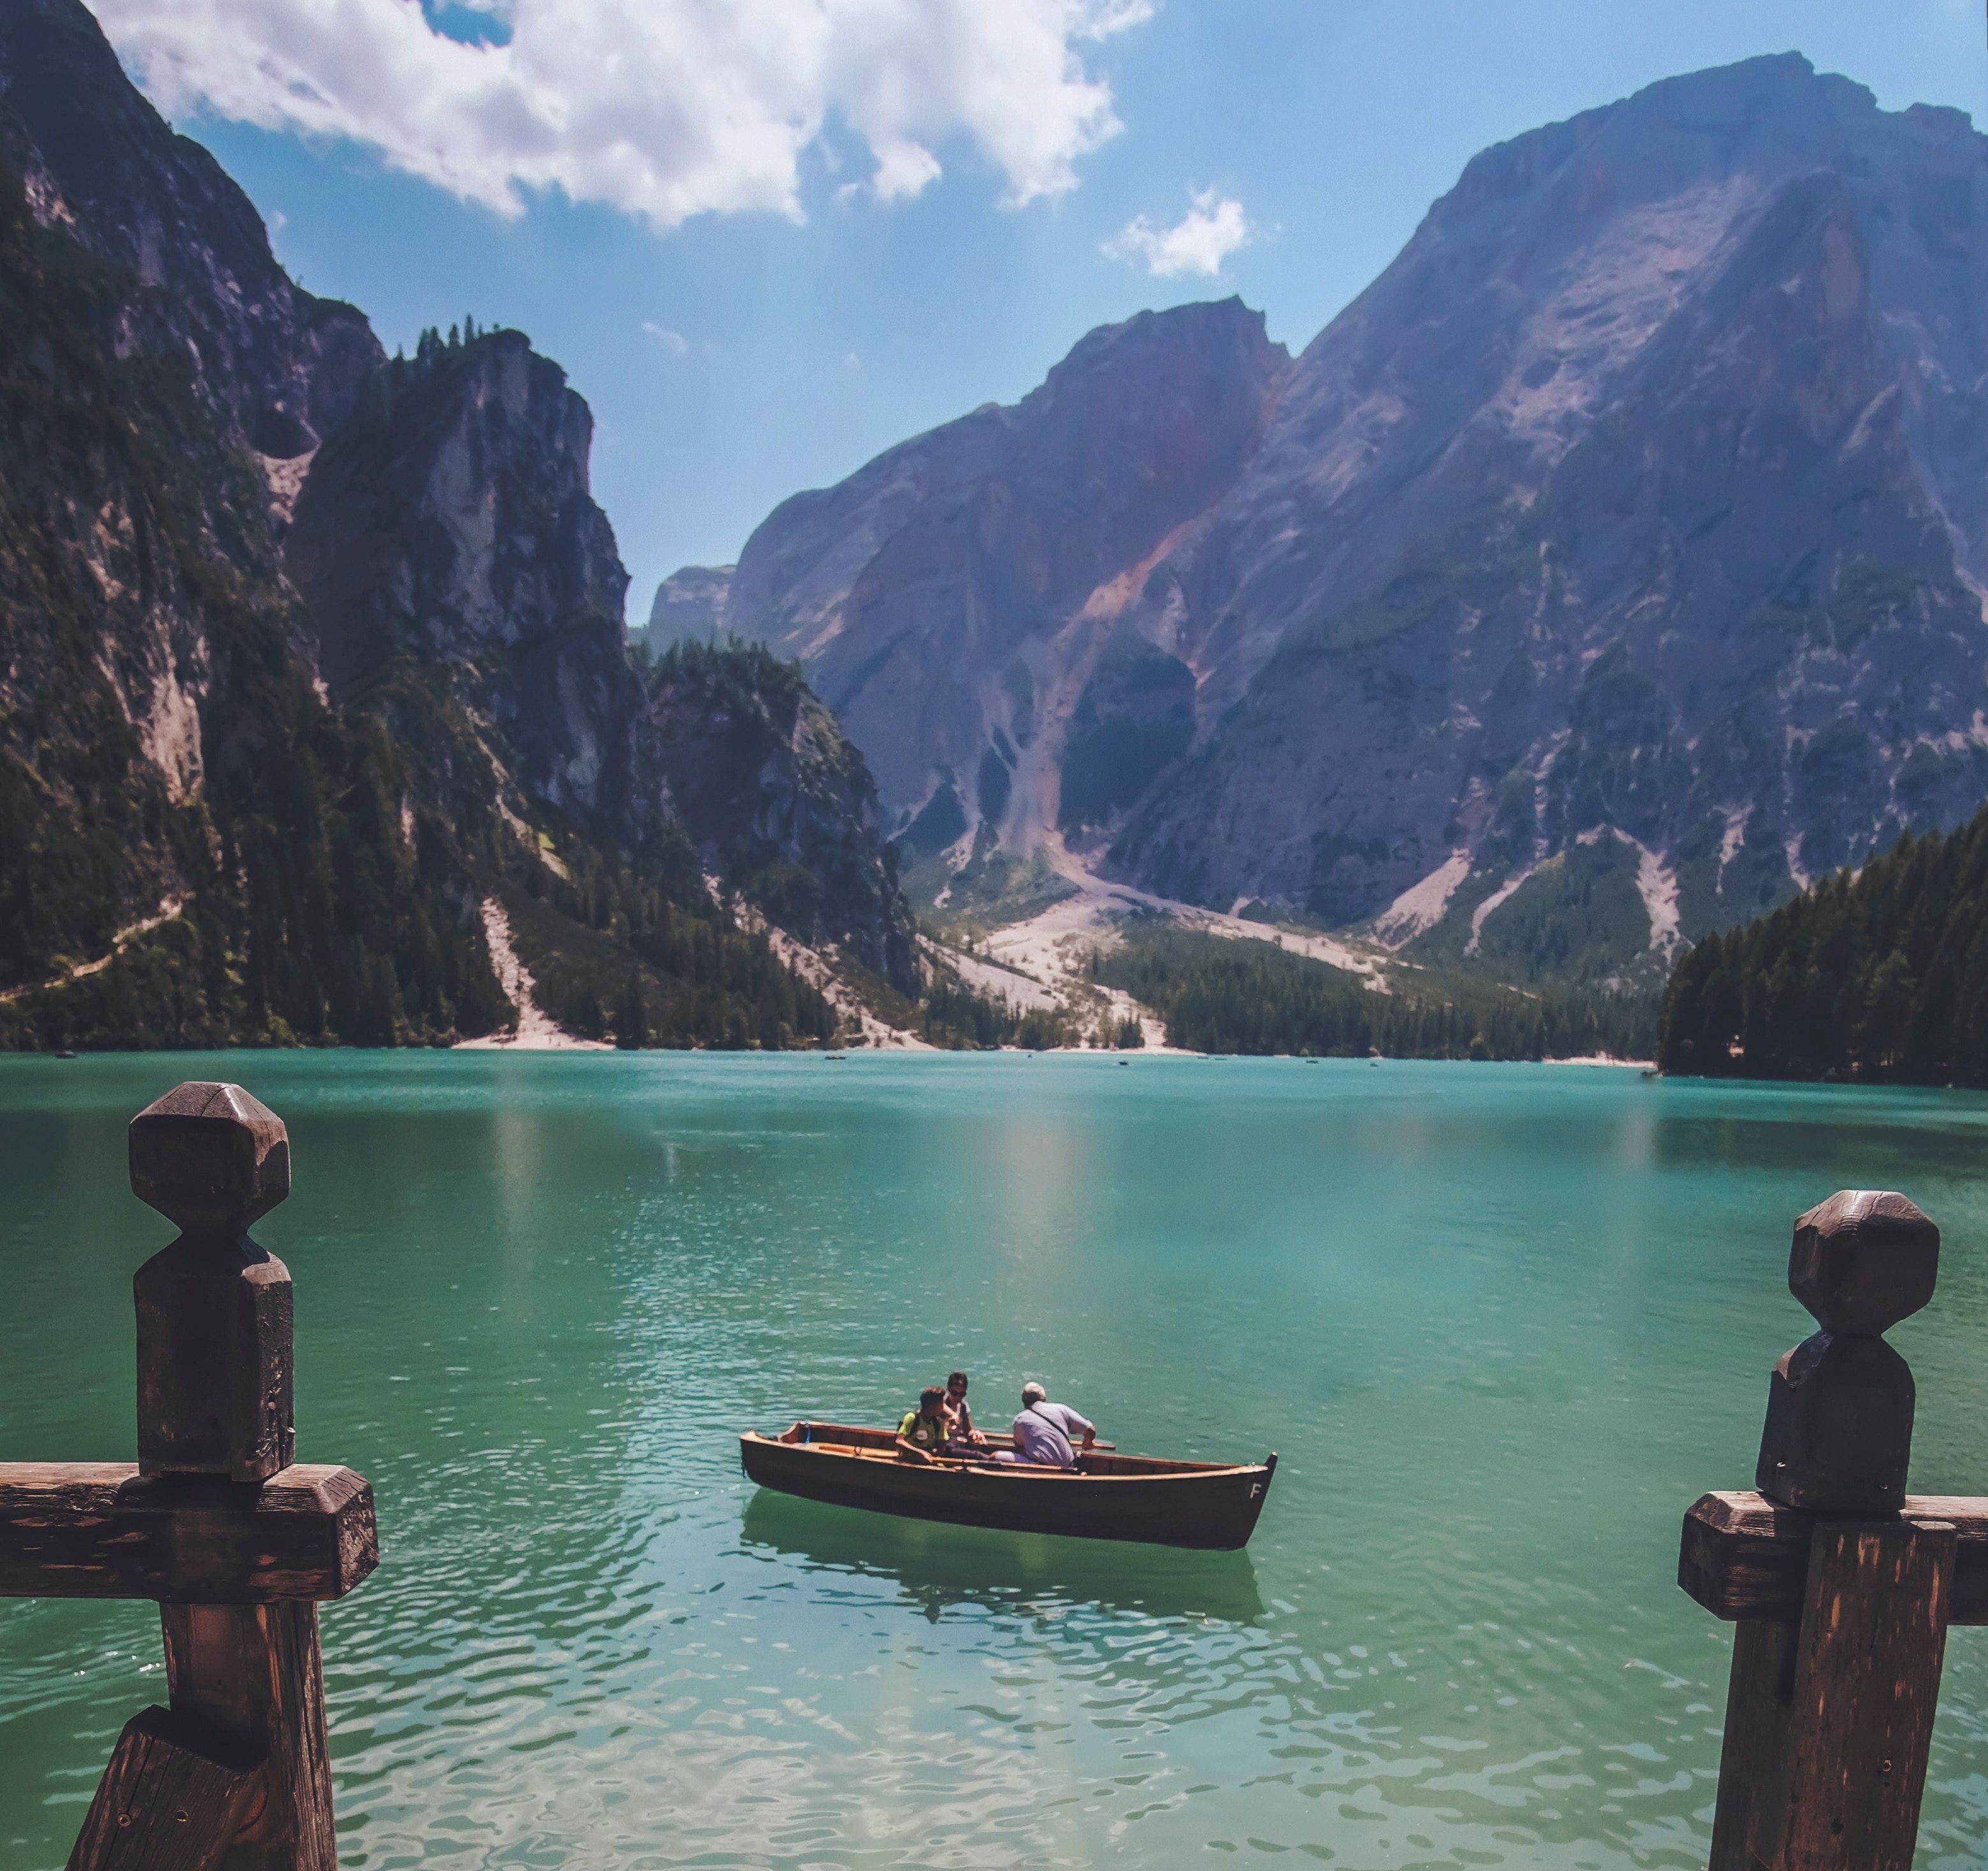 What A Beautiful View Check Out The Link Below For More  F0 9f 8f 94  F0 9f 8f 95  F0 9f 8f 9e Nature Mountains Hiking Tacos Adventure Hikinggirl Hikingtrail Hike